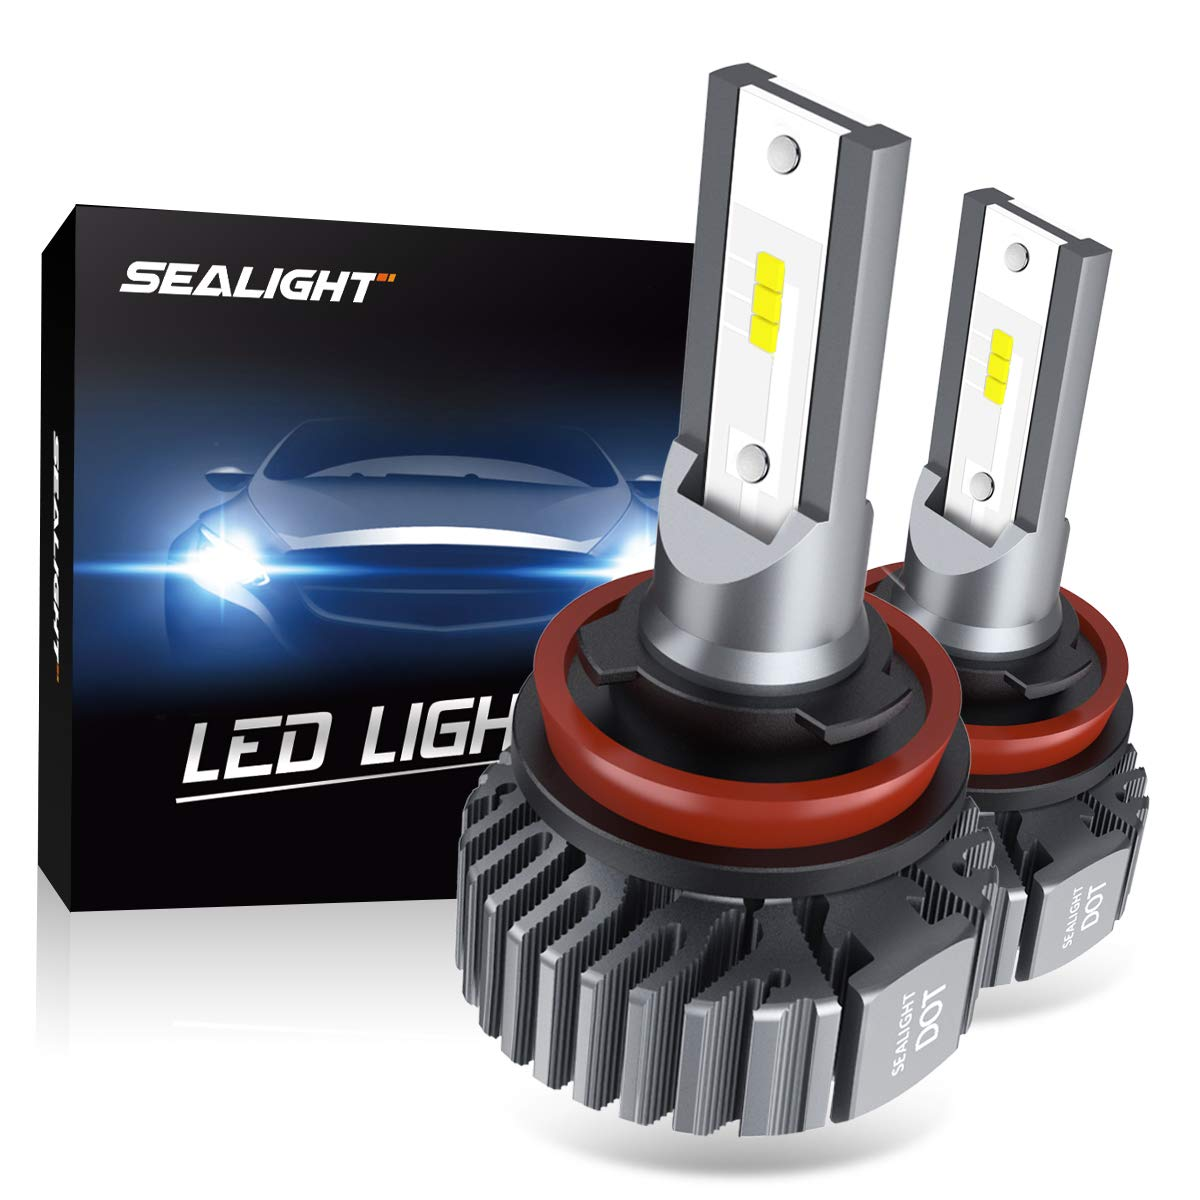 SEALIGHT H11 H9 H8 LED Headlight Bulbs Fanless 6000K White Low Beam Fog lights CSP Chips Halogen Headlight Replacement 30W 5000Lumens